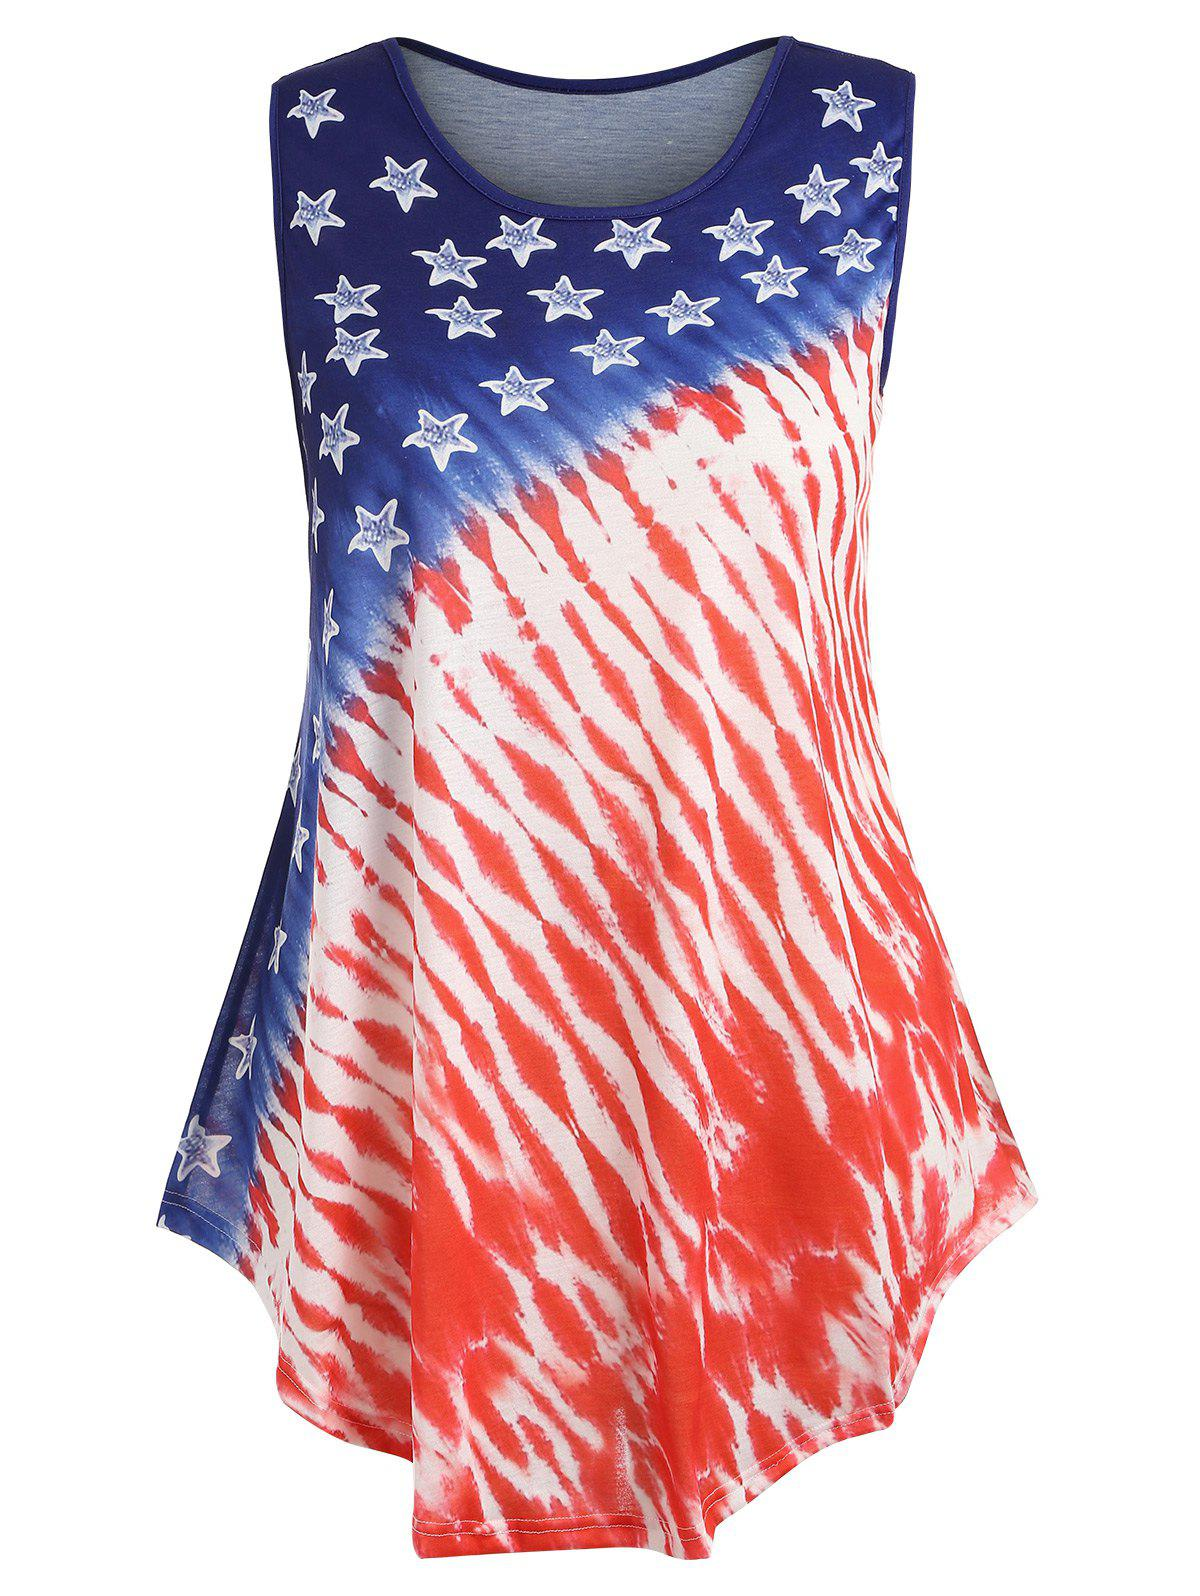 8a4f2066ad4 66% OFF   2019 Plus Size Patriotic American Flag Tank Top